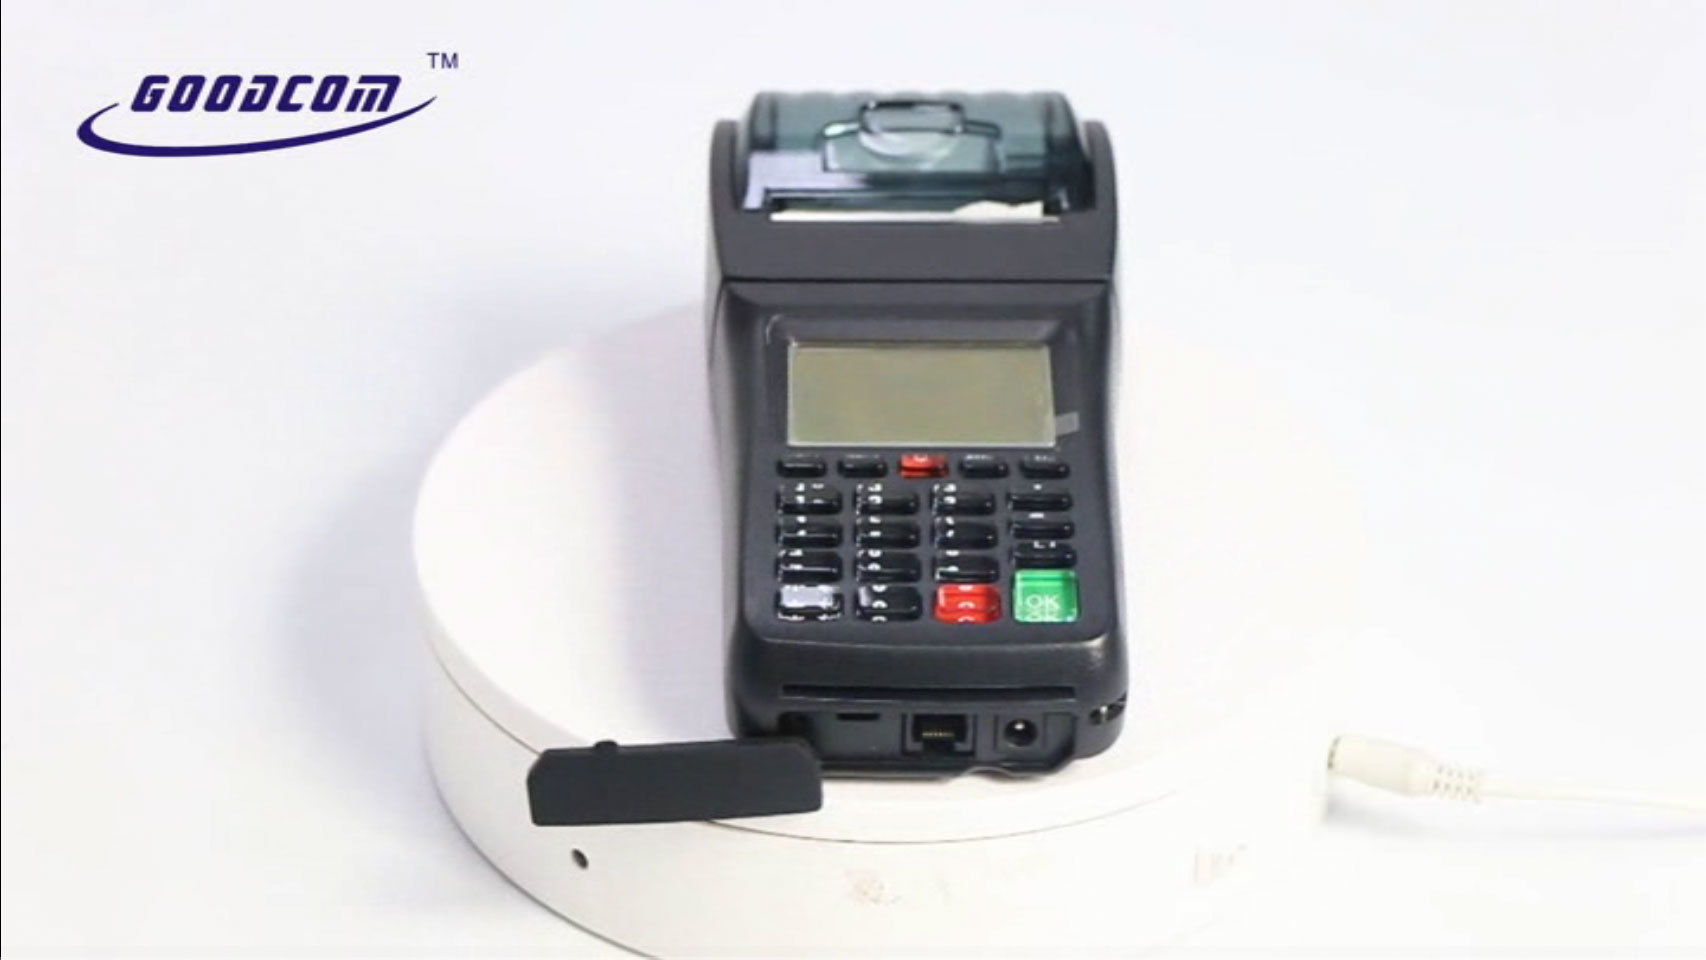 Handheld Bus ticketing Terminal with Printer